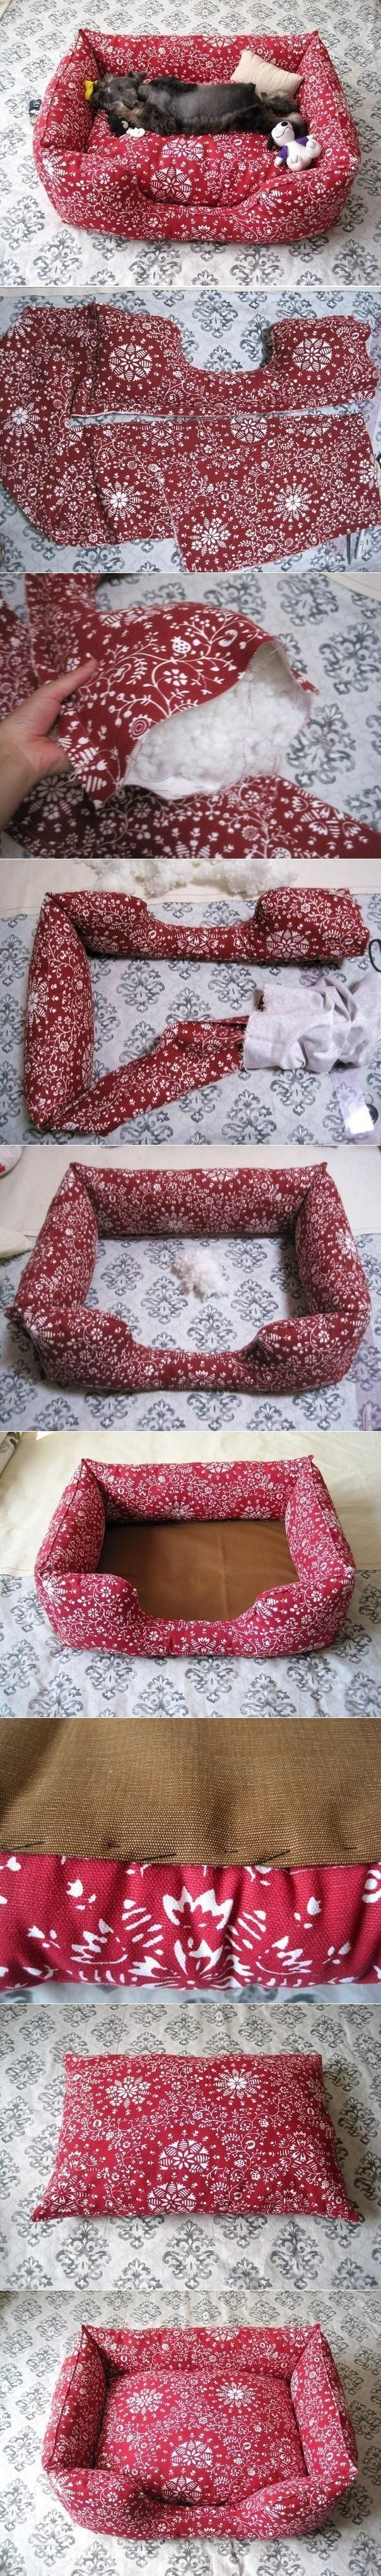 why buy a boring brown dog bed when you can have a customized and unique one that fits with your decor!